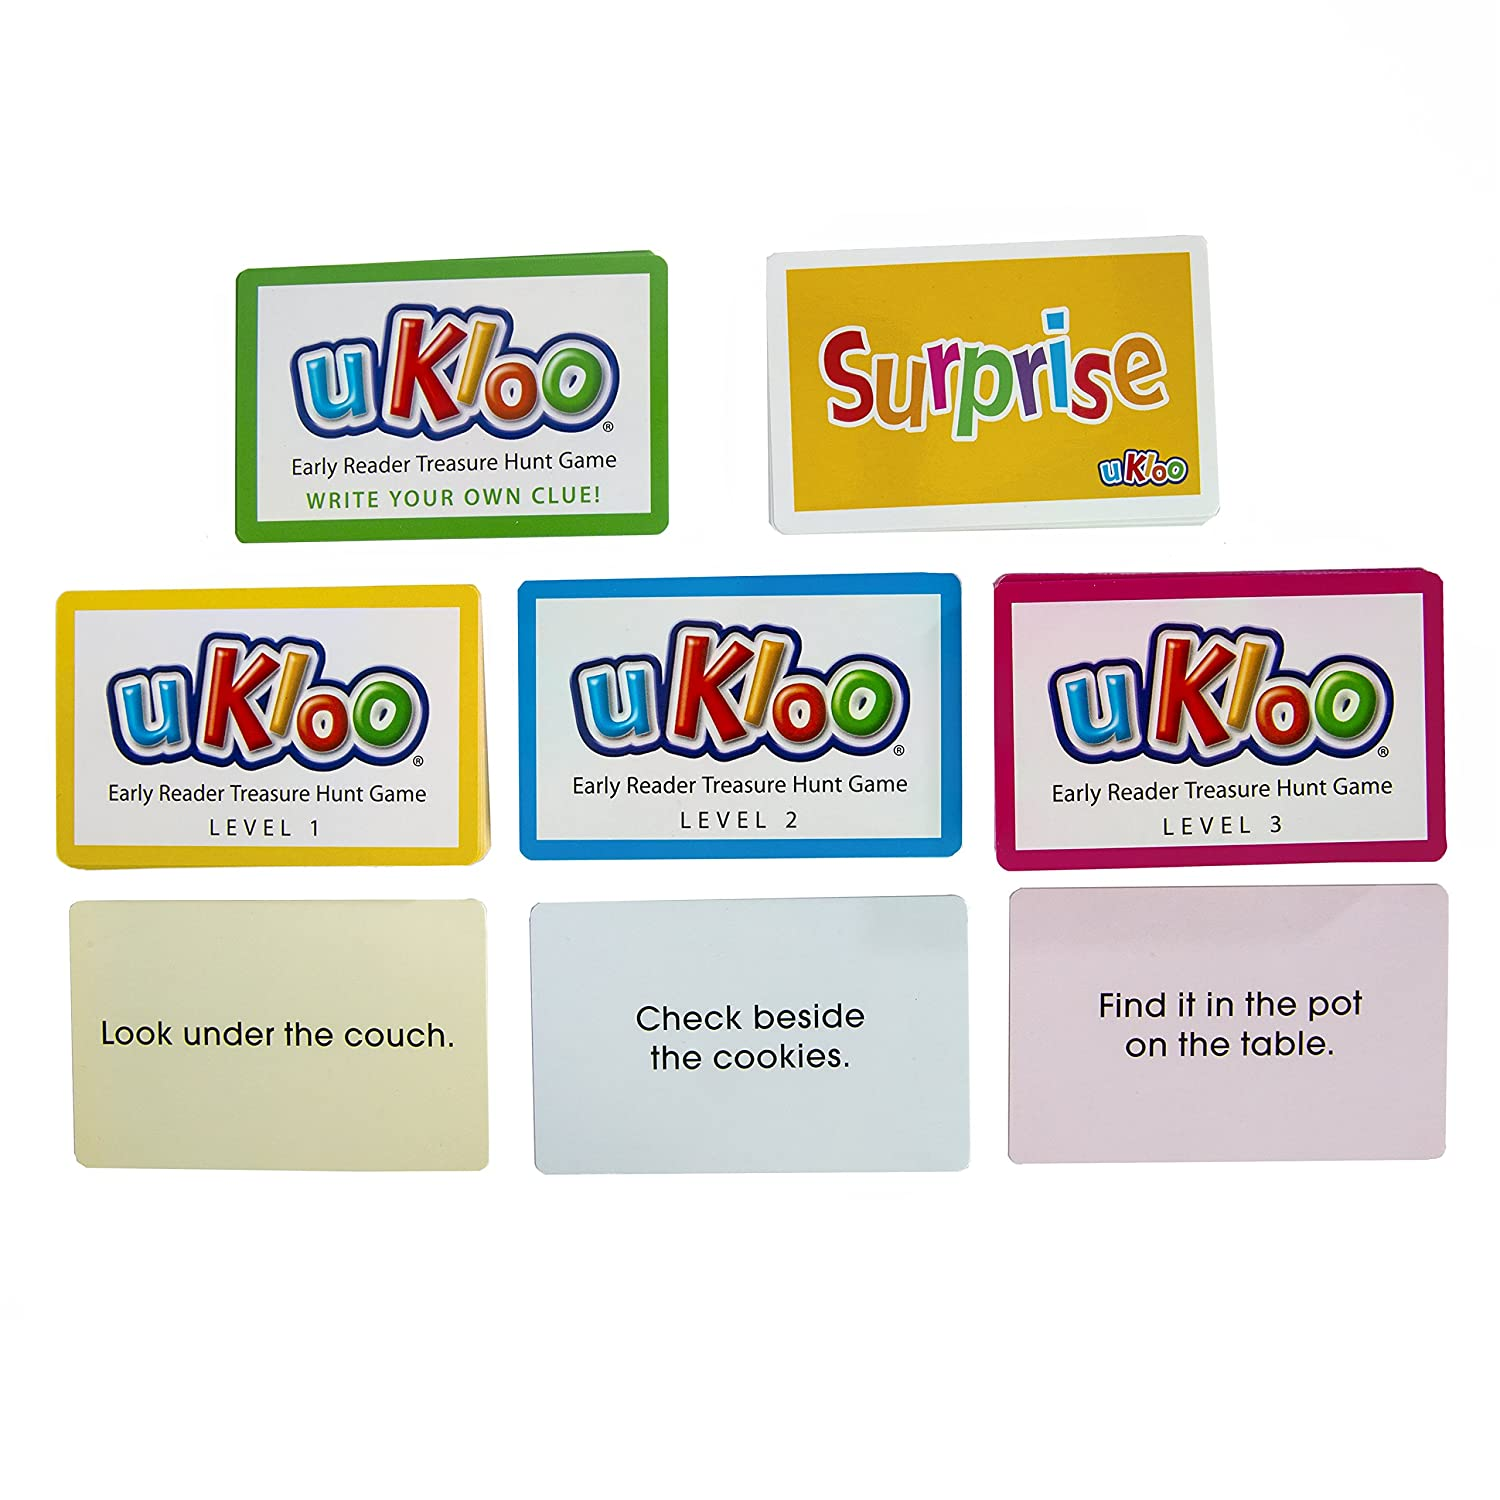 uKloo Early Reader Treasure Hunt Game uKloo Kids Inc. UKLOO1 ...